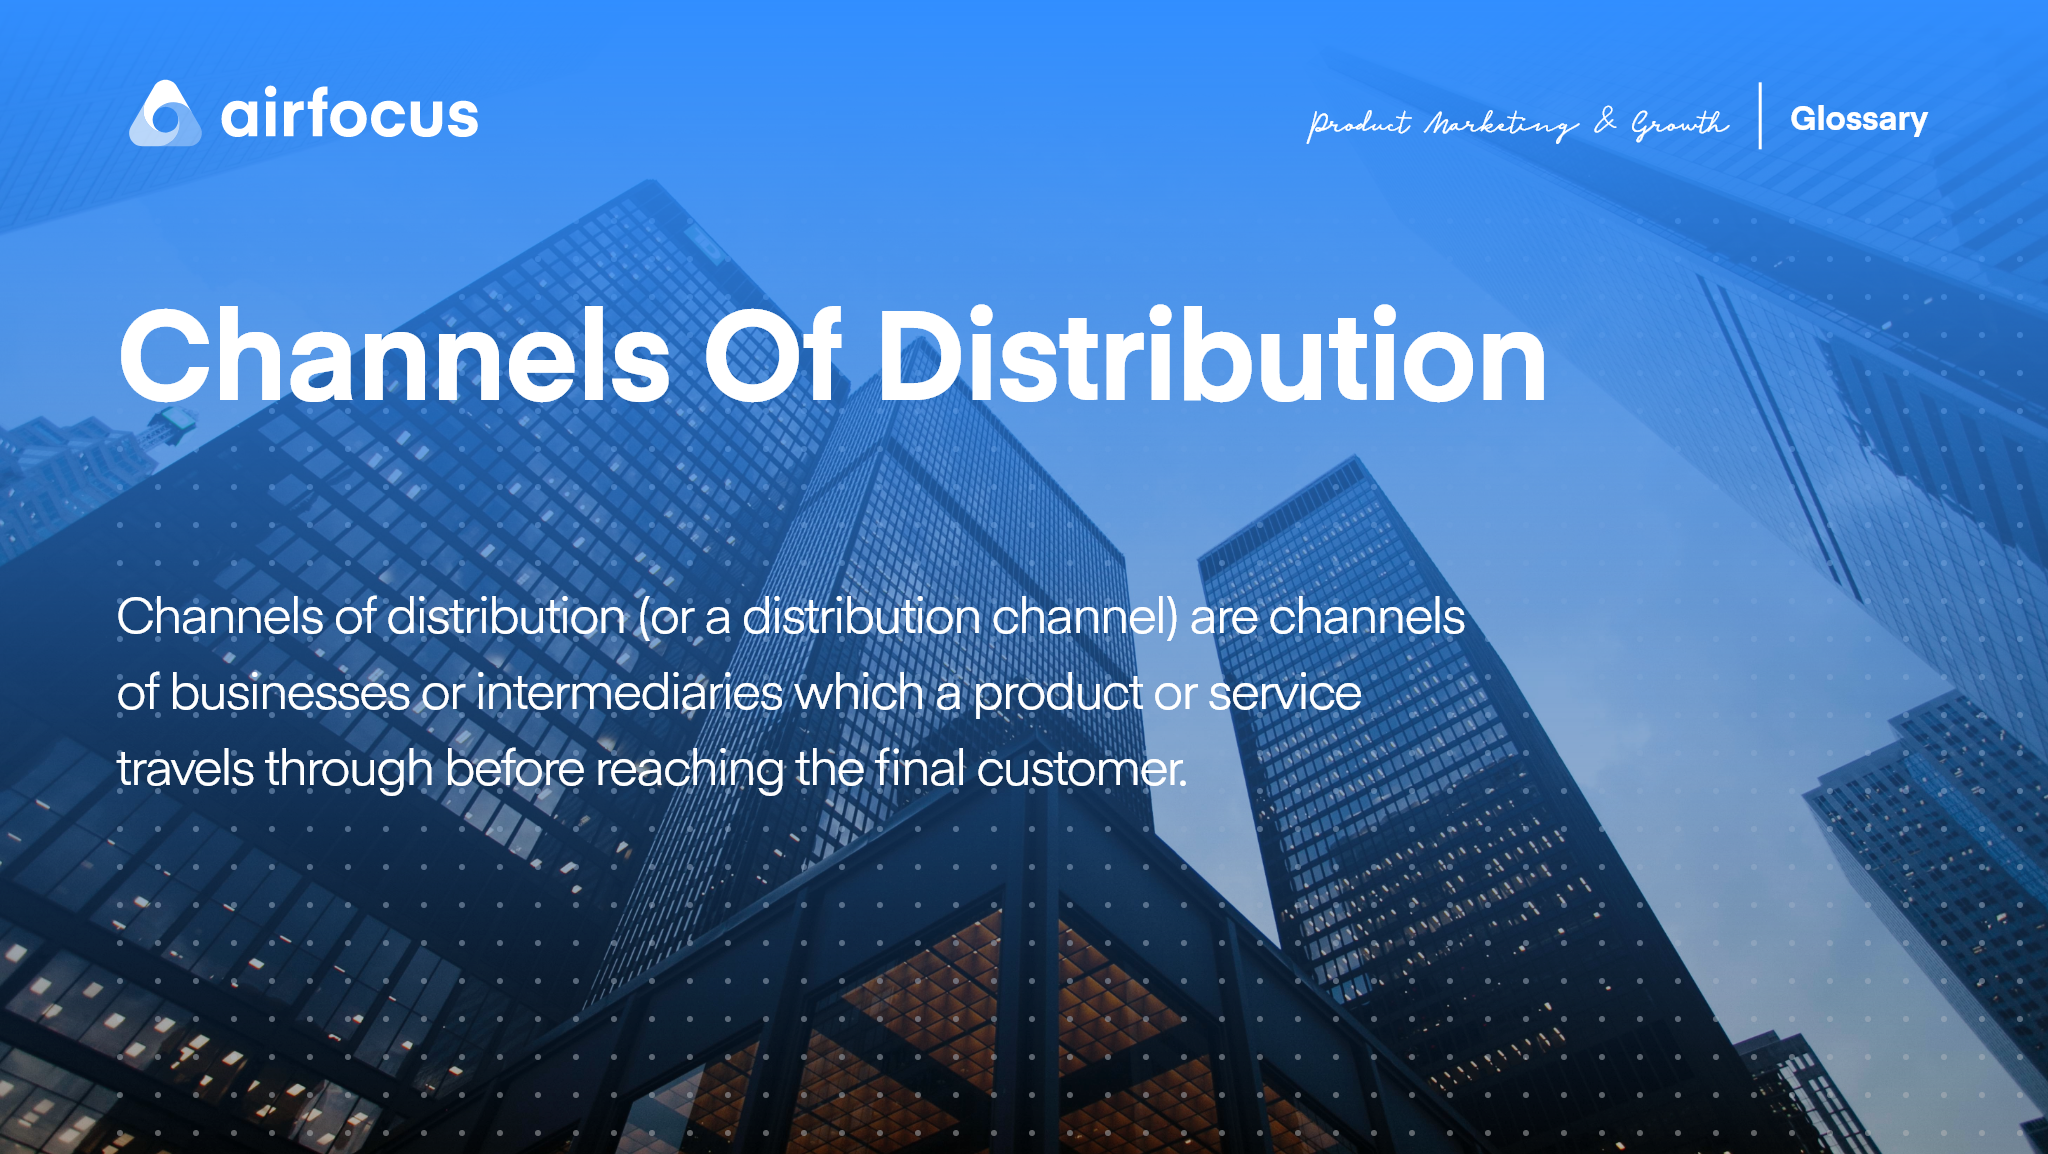 What are Channels of Distribution